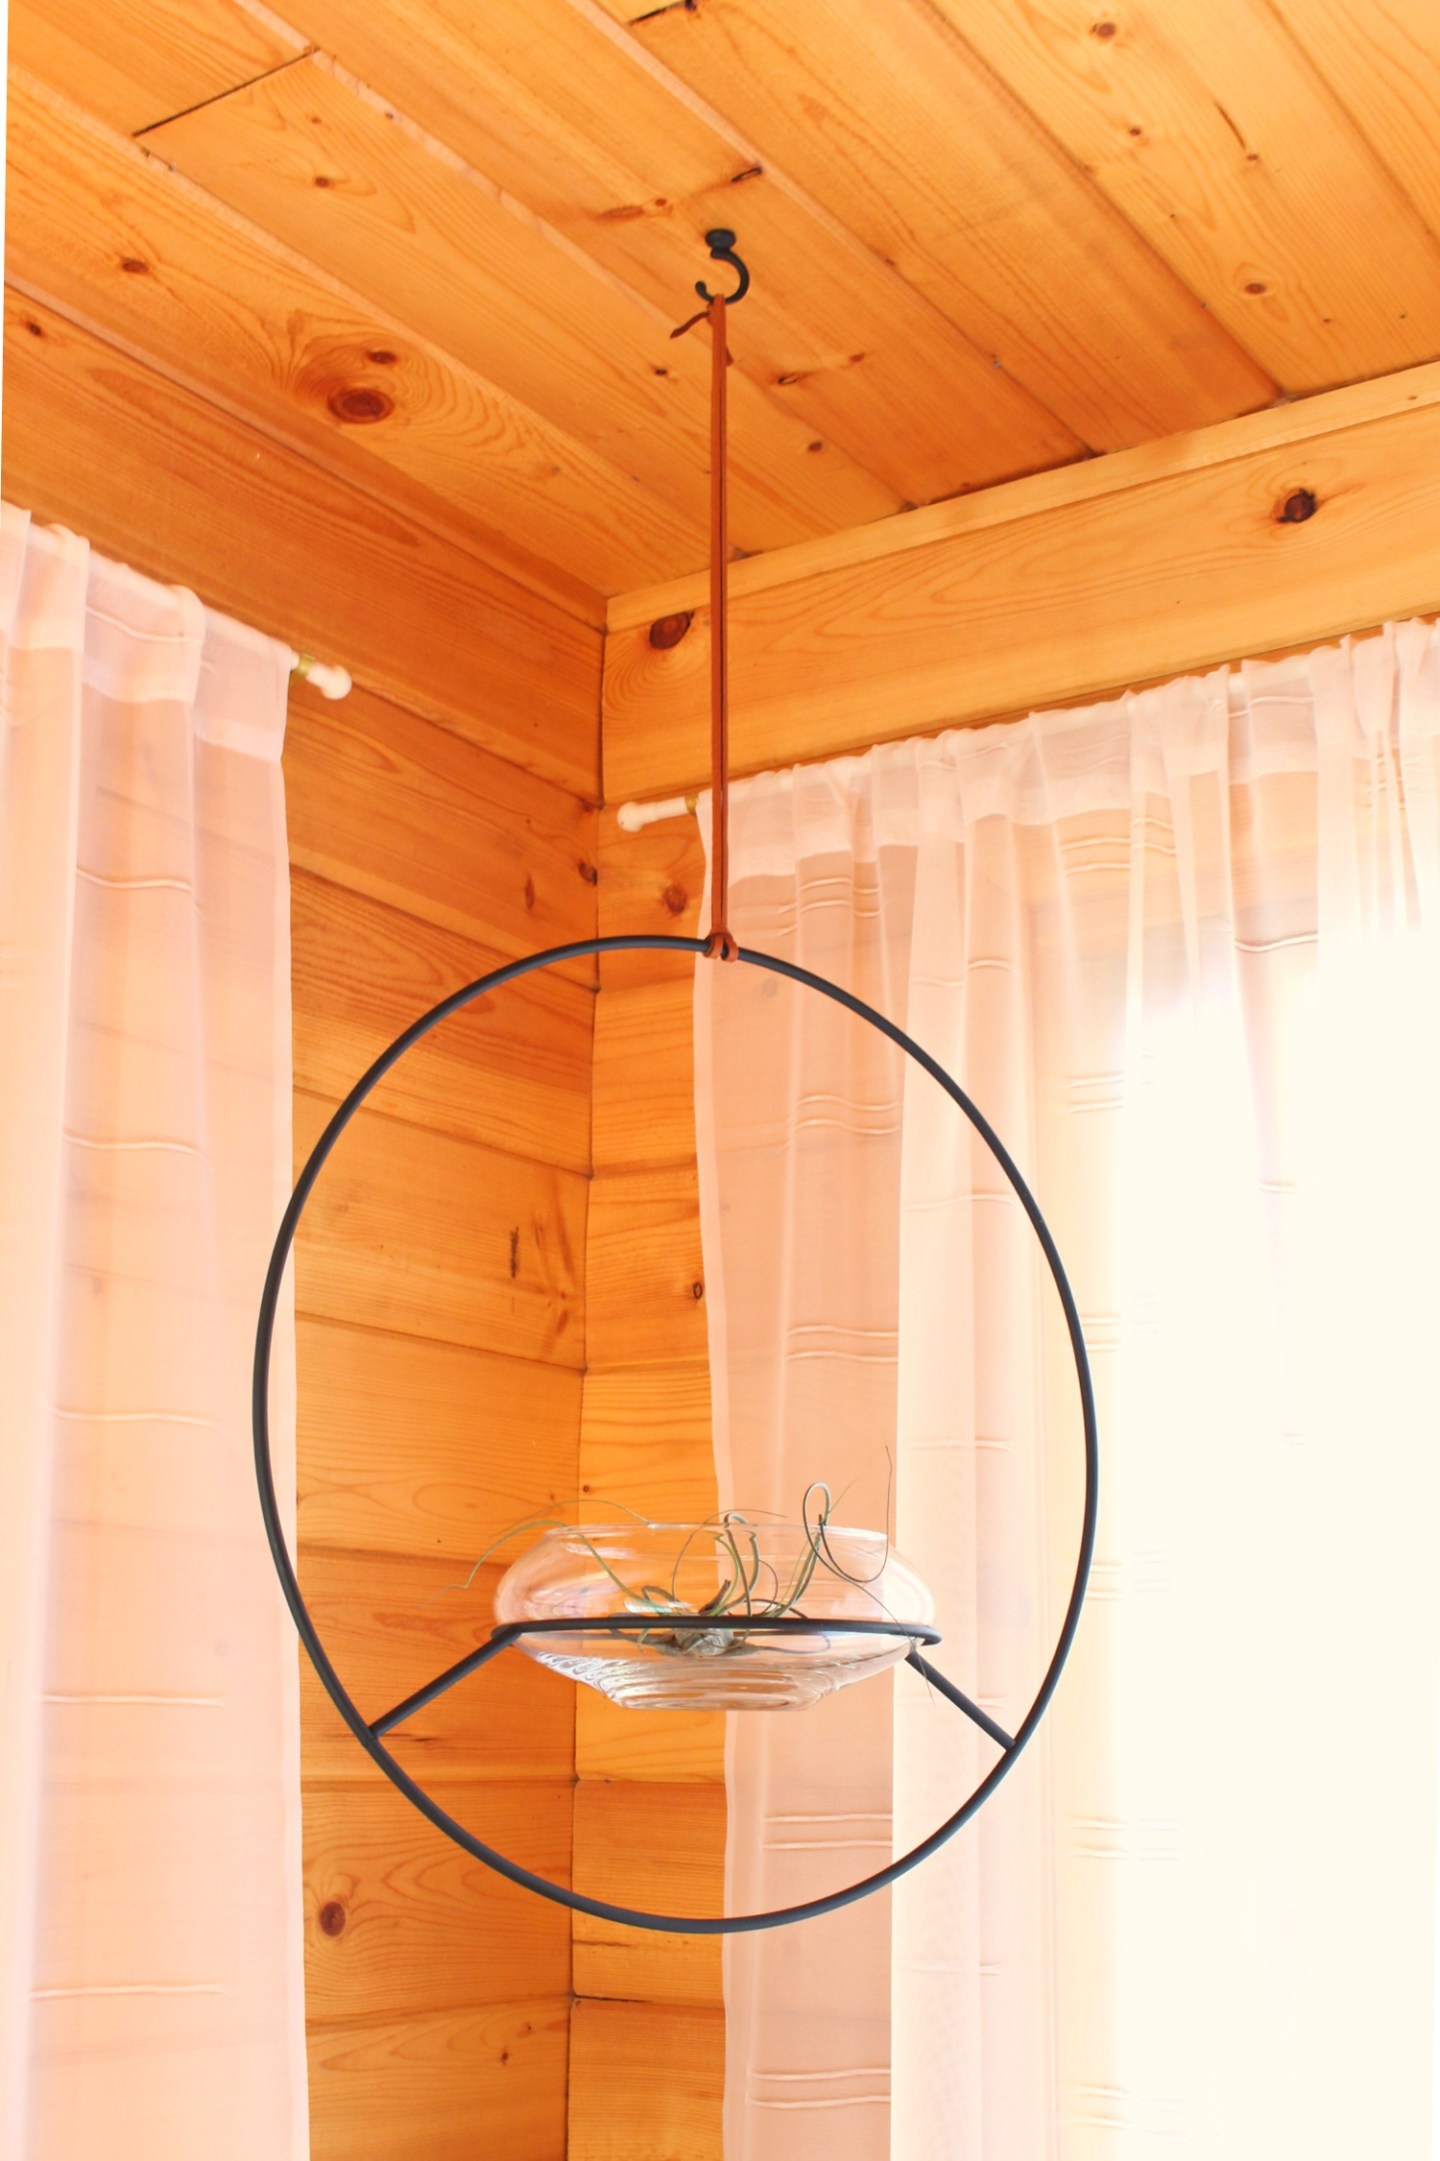 Hanging Hoop Planter with Leather Cord DIY